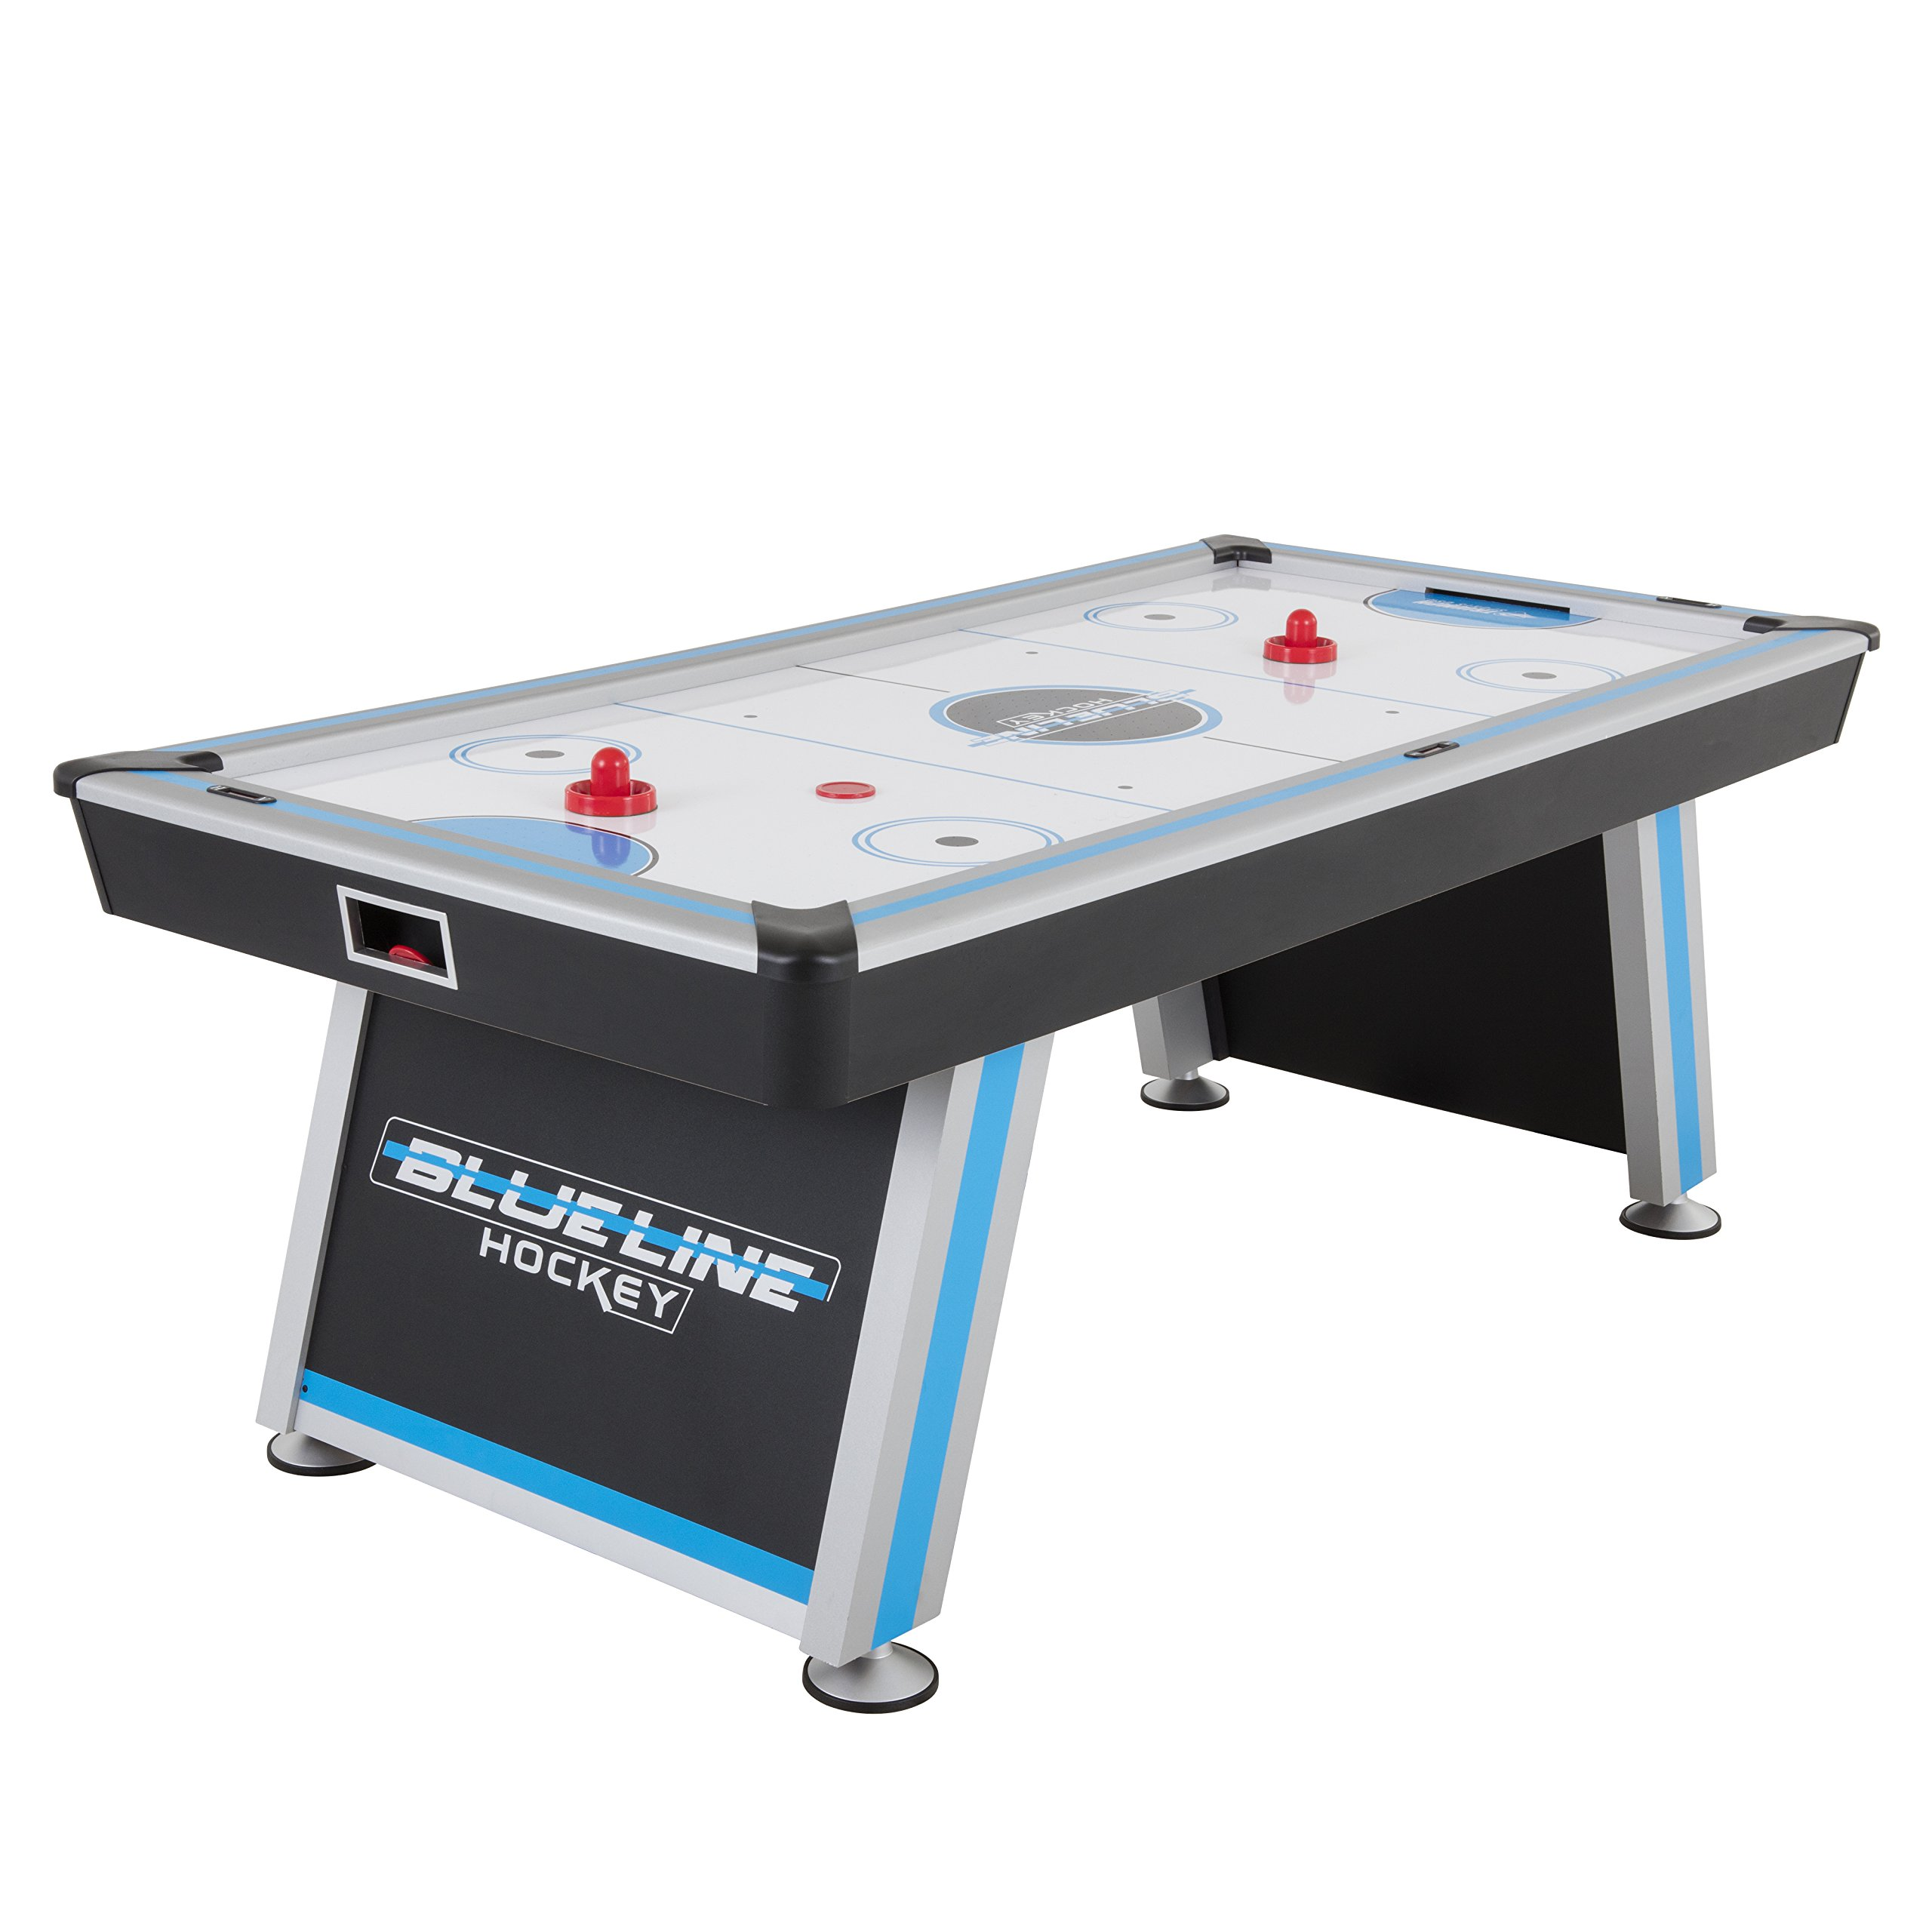 Triumph Blue-Line 7' Air-Powered Hockey Table with 100V Motor and Includes Two Hockey Pushers and Two Pucks by Triumph Sports